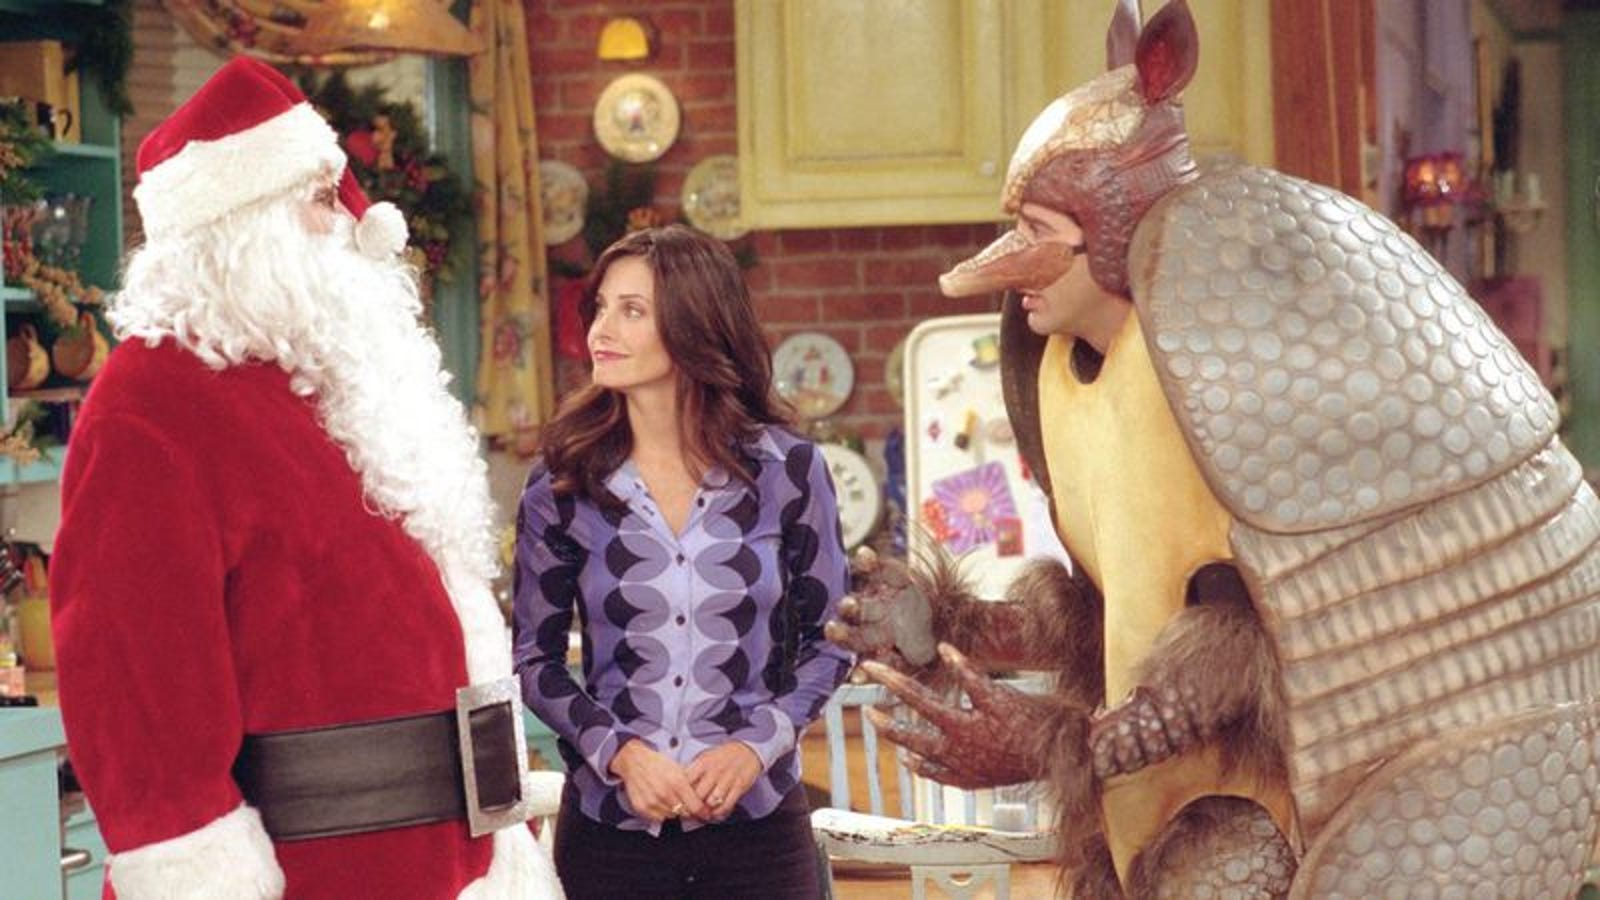 10 episodes wishing you and yours a merry sitcom Christmas